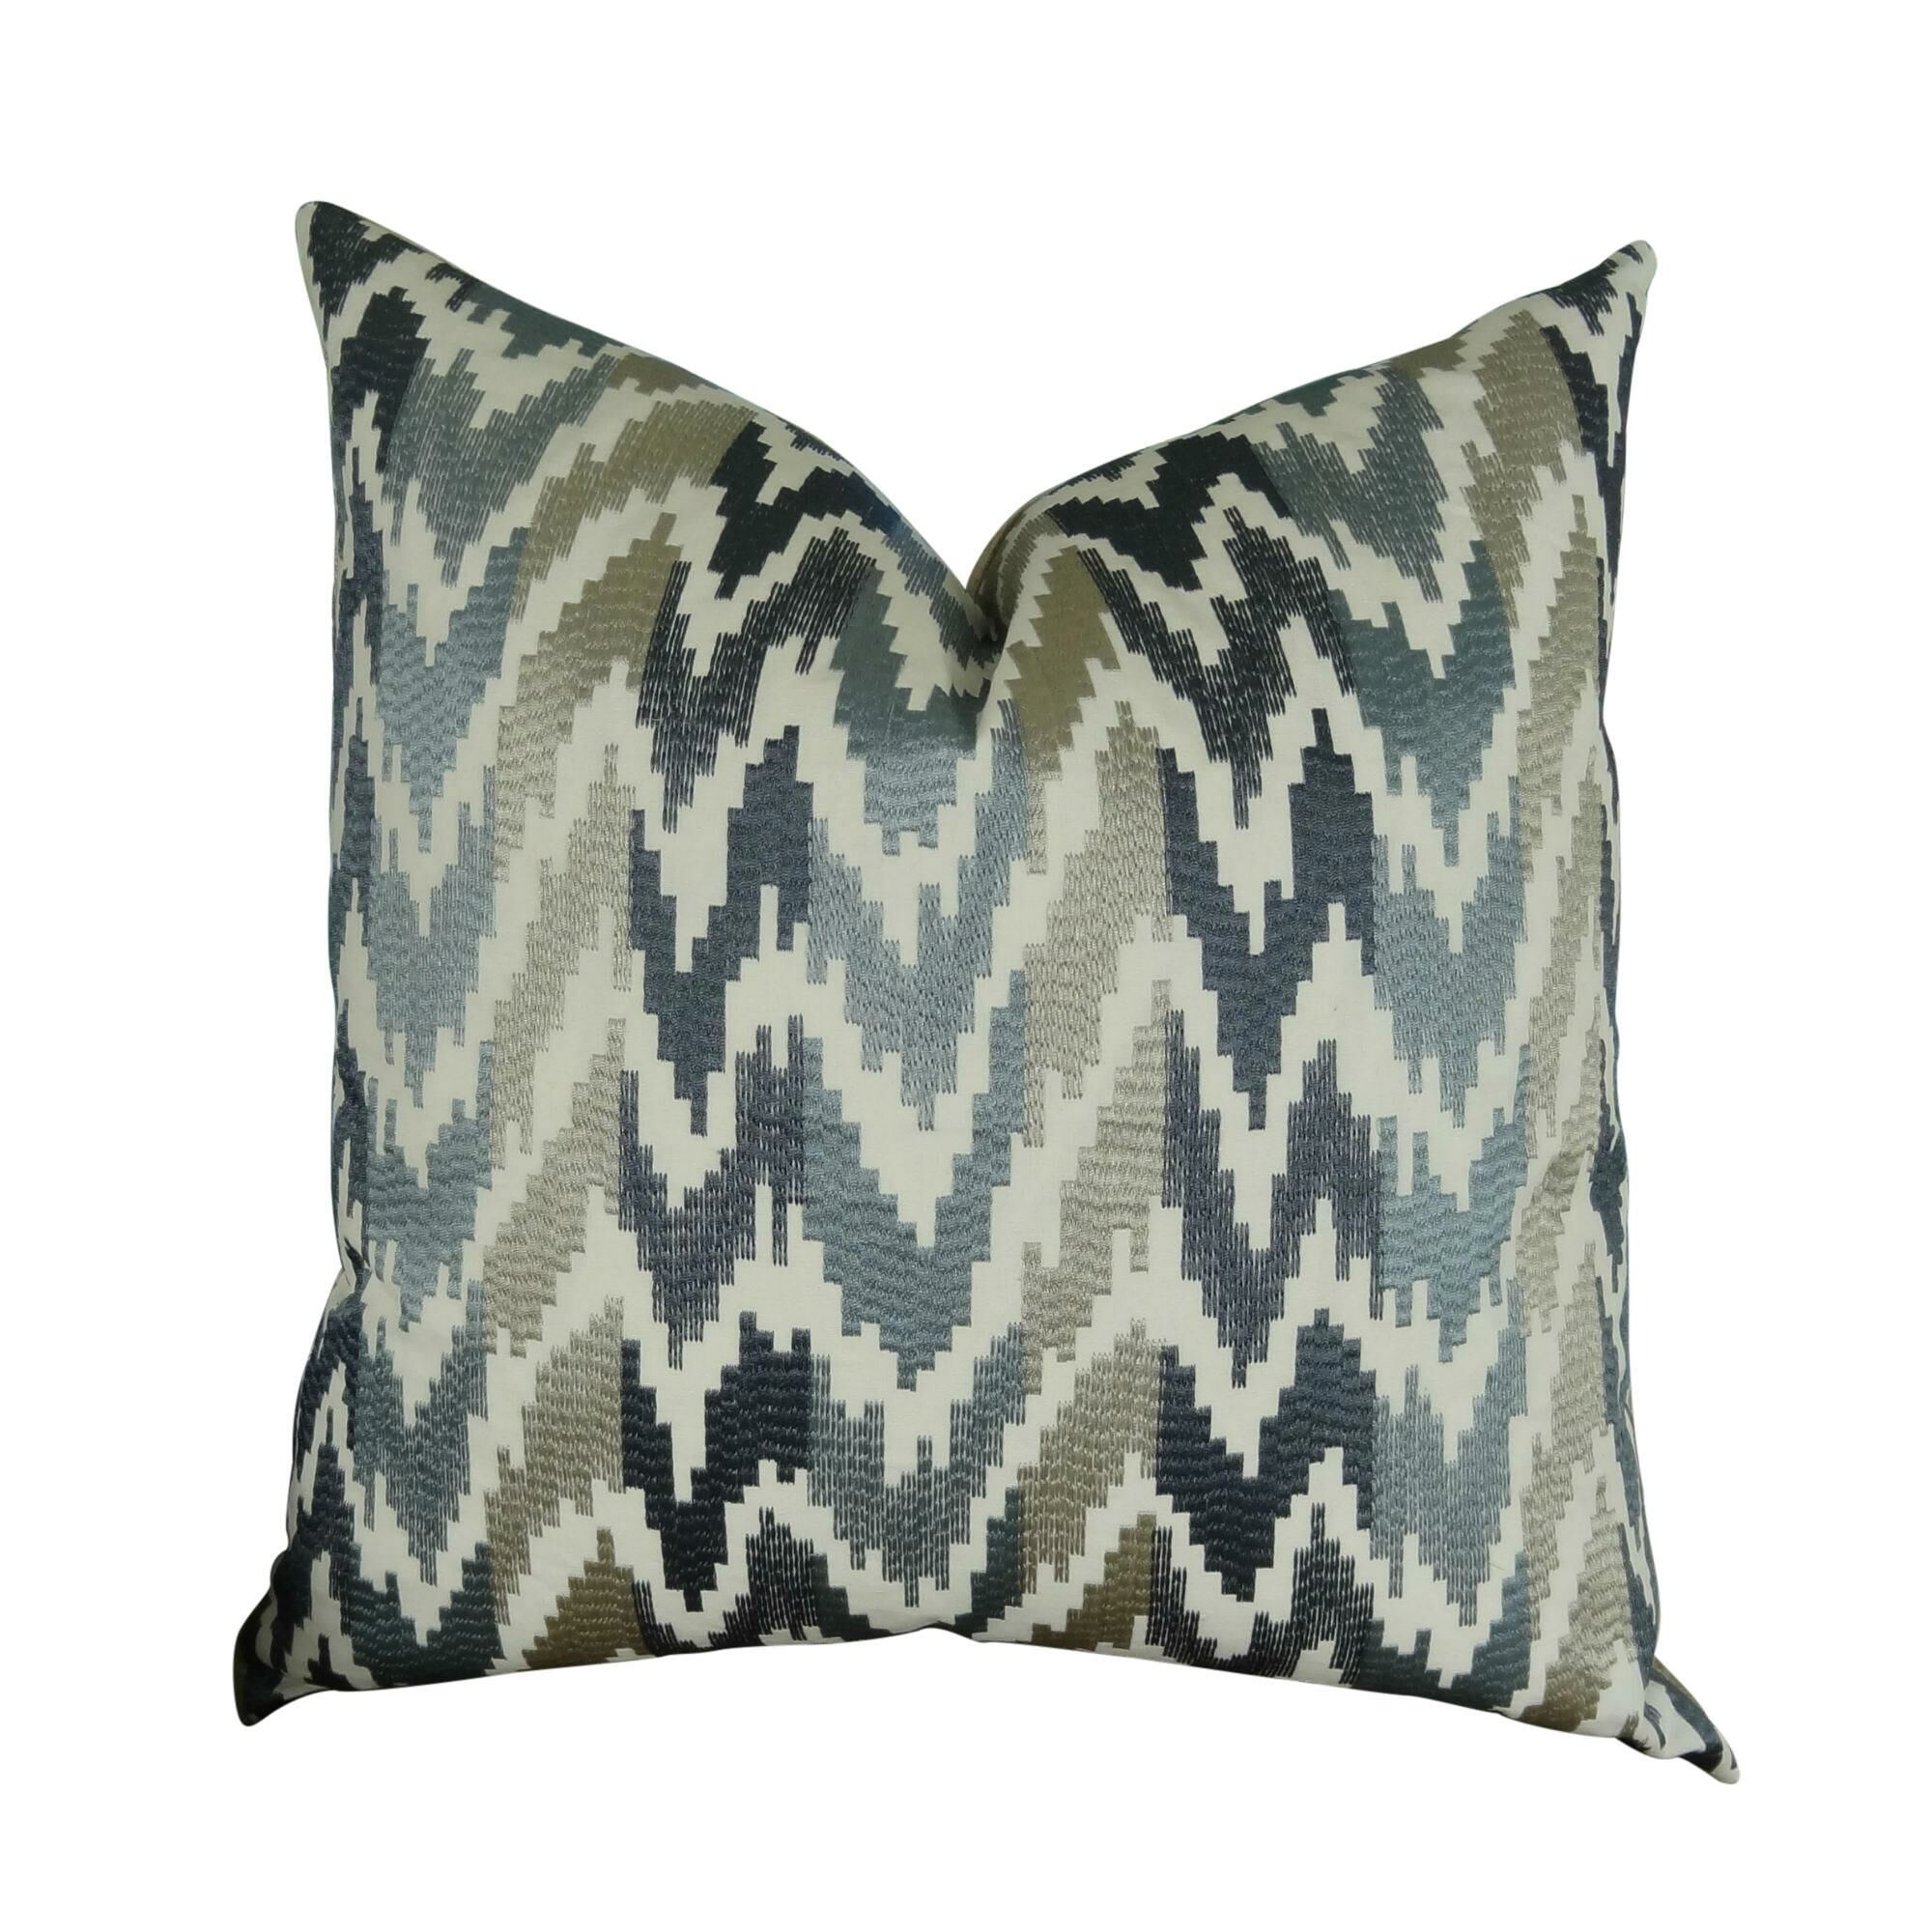 Lamkin Luxury Pillow Fill Material: 95/5 Feather/Down, Size: 20